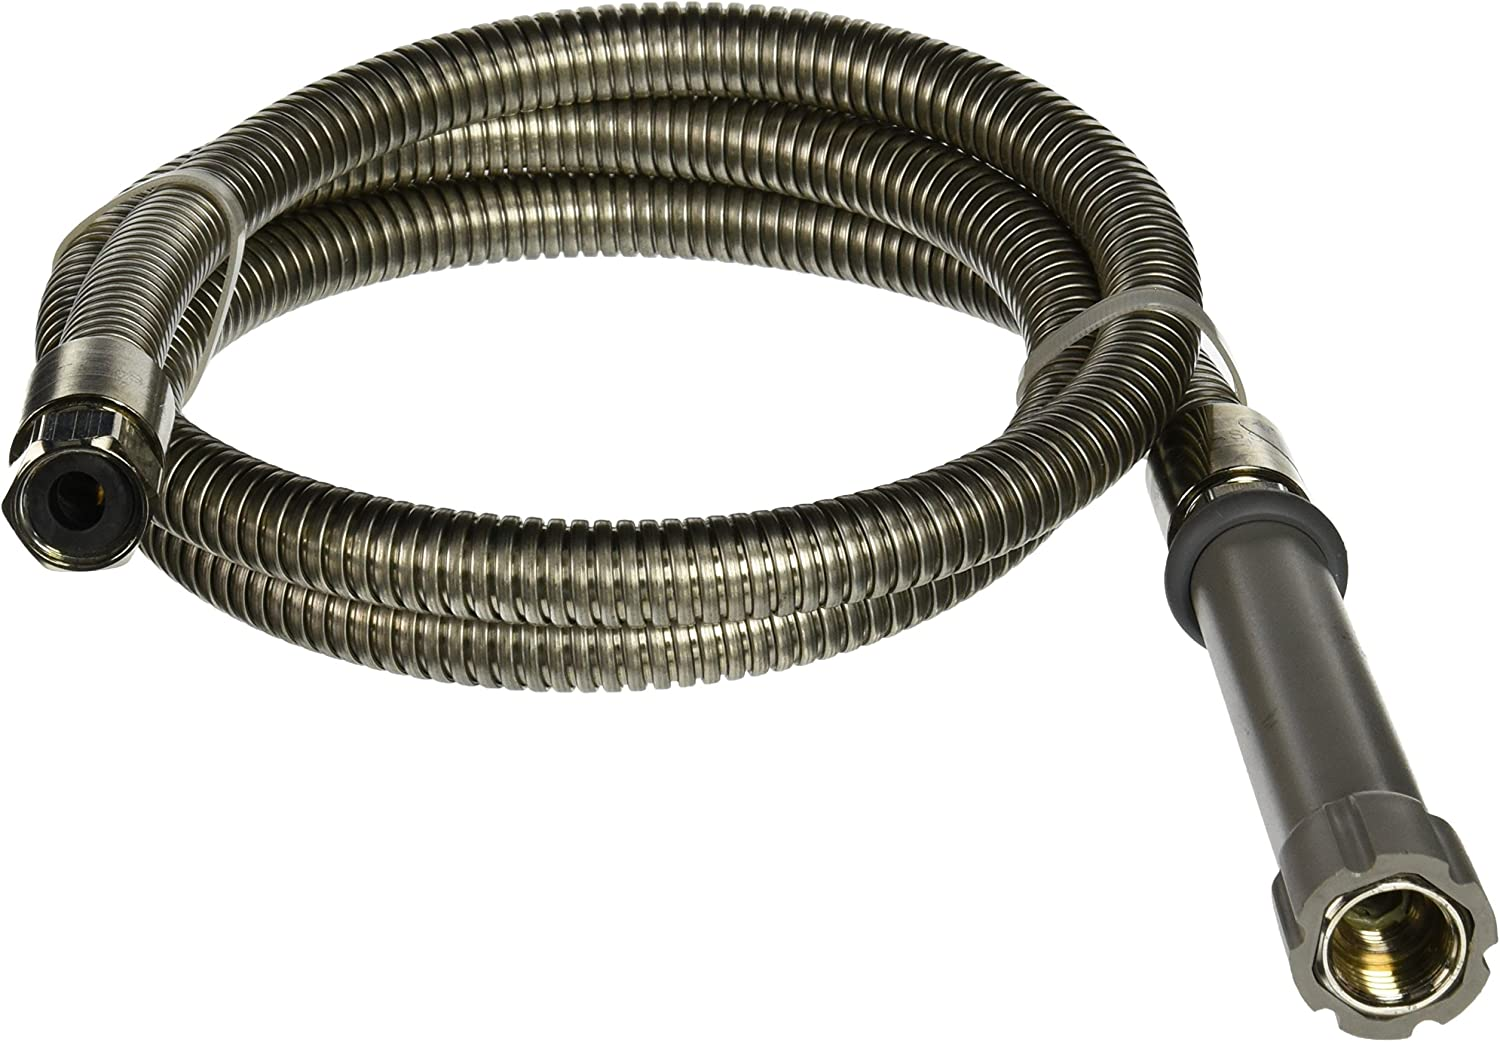 T/&S Brass B-0068-HML 68-Inch Flexible Stainless Steel Hose GIDDS-51-3168